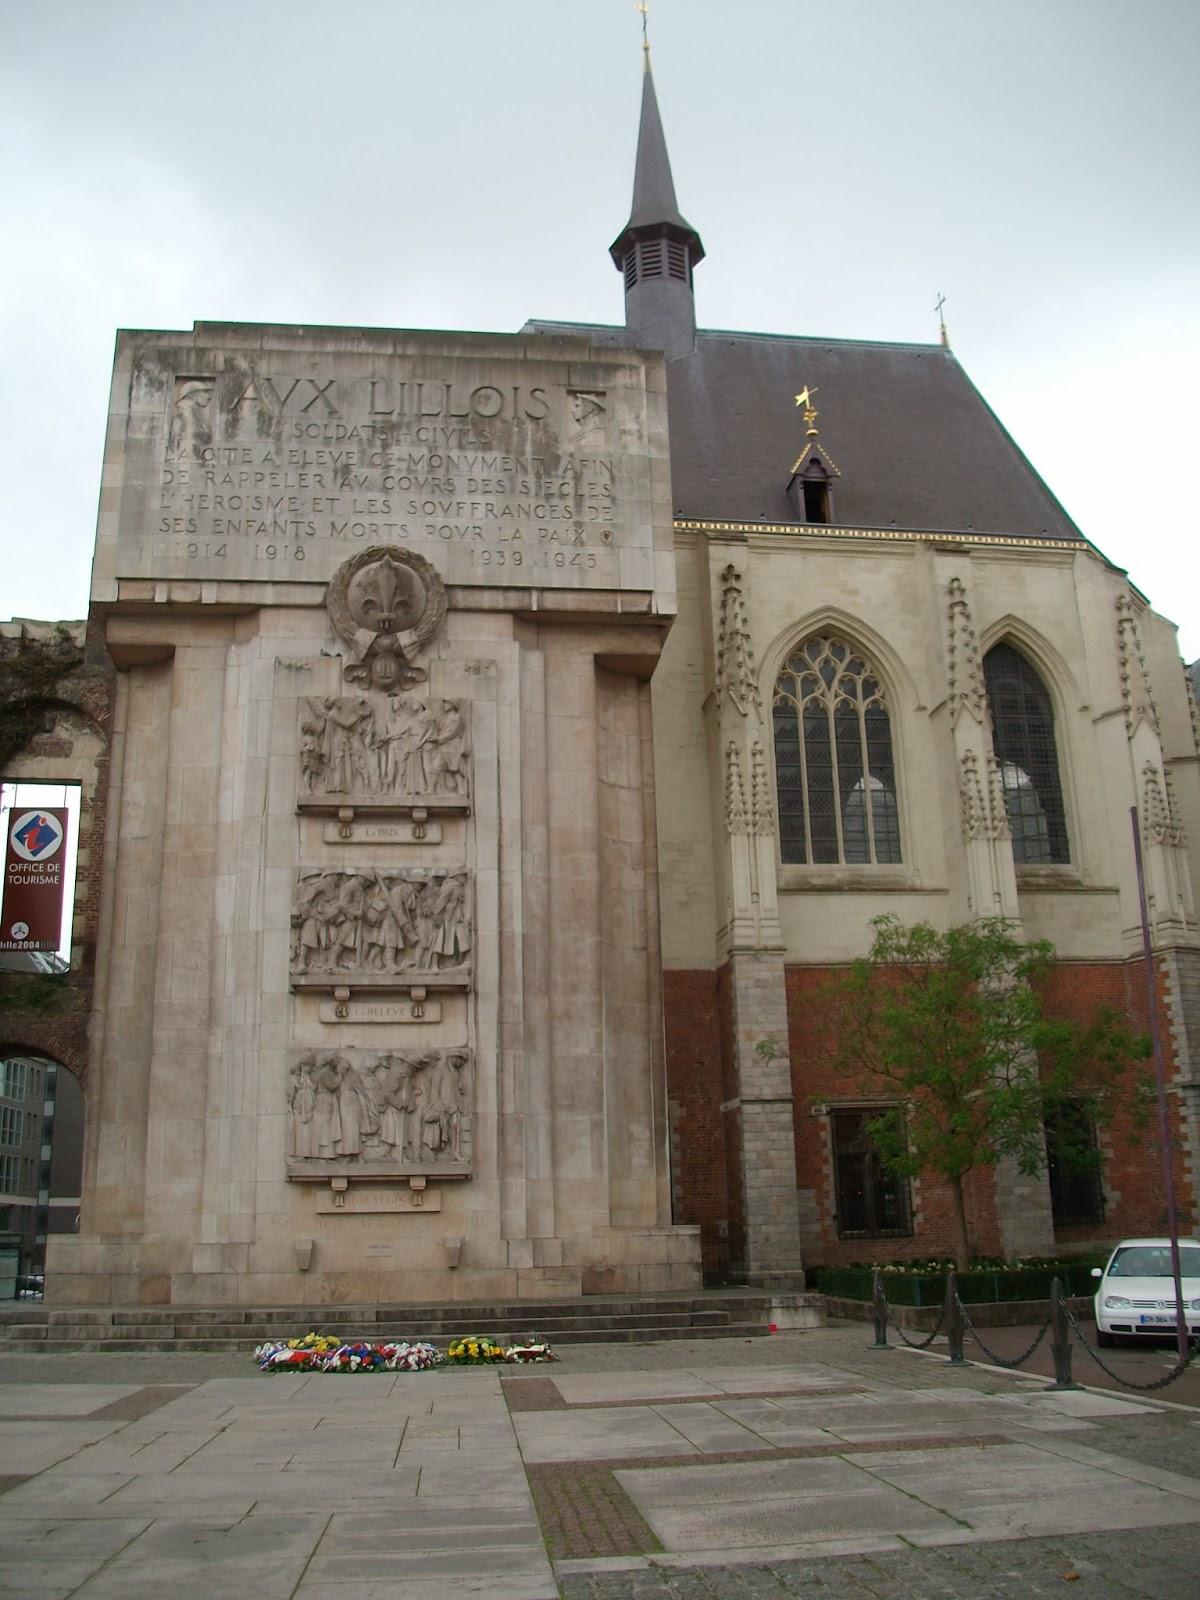 Ww2 The Second World War Suffering And Loss In Lille And Northern